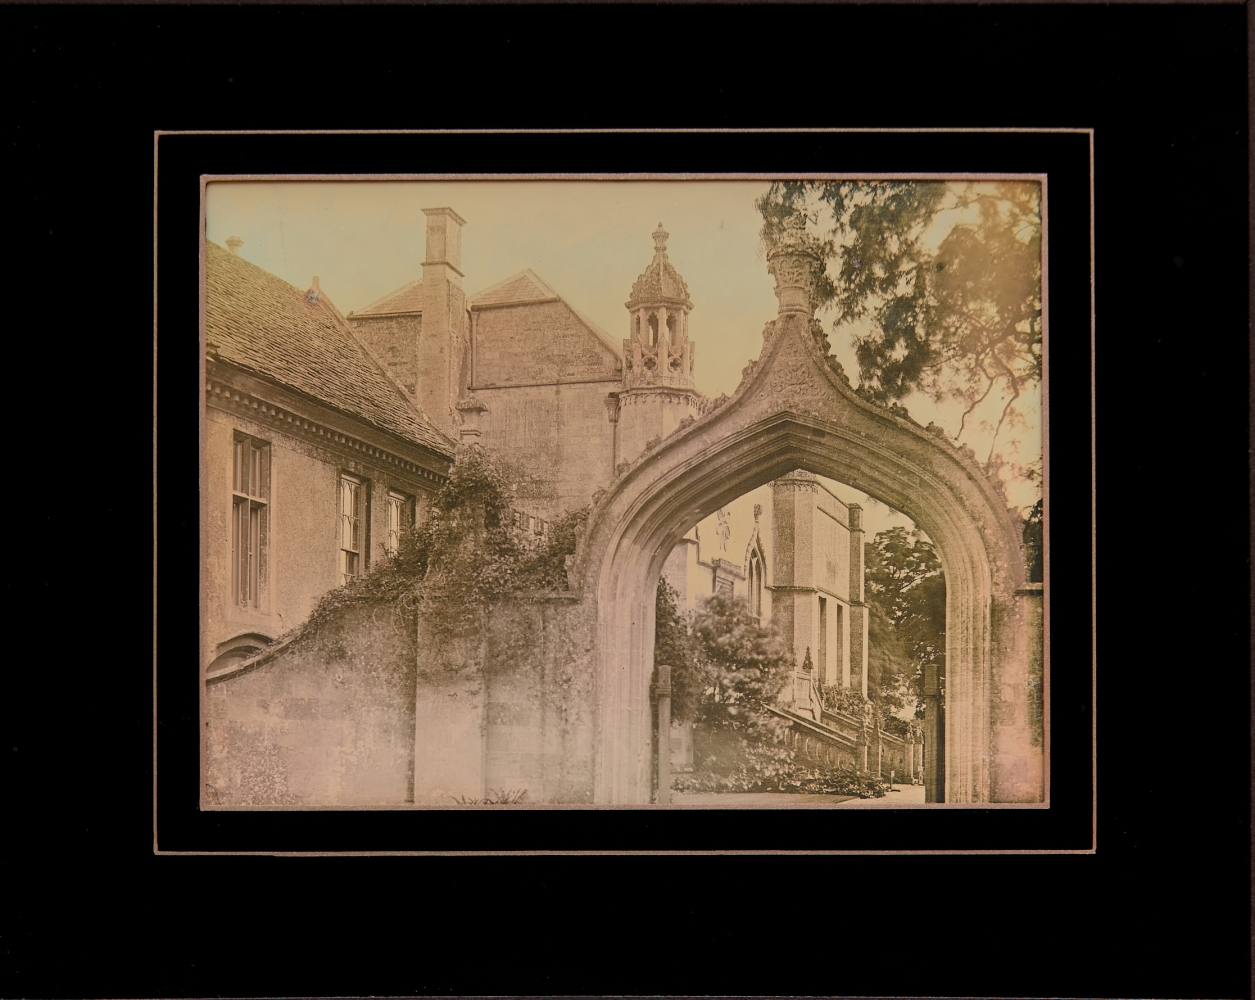 """Mike ROBINSON (Canadian, b. 1961) """"Gothick Gateway"""", Lacock Abbey, 2017 Half plate daguerreotype Framed in reverse paint passe-partout 15.8 x 19.7 cm Signed, titled, and dated in ink on studio label, frame verso"""